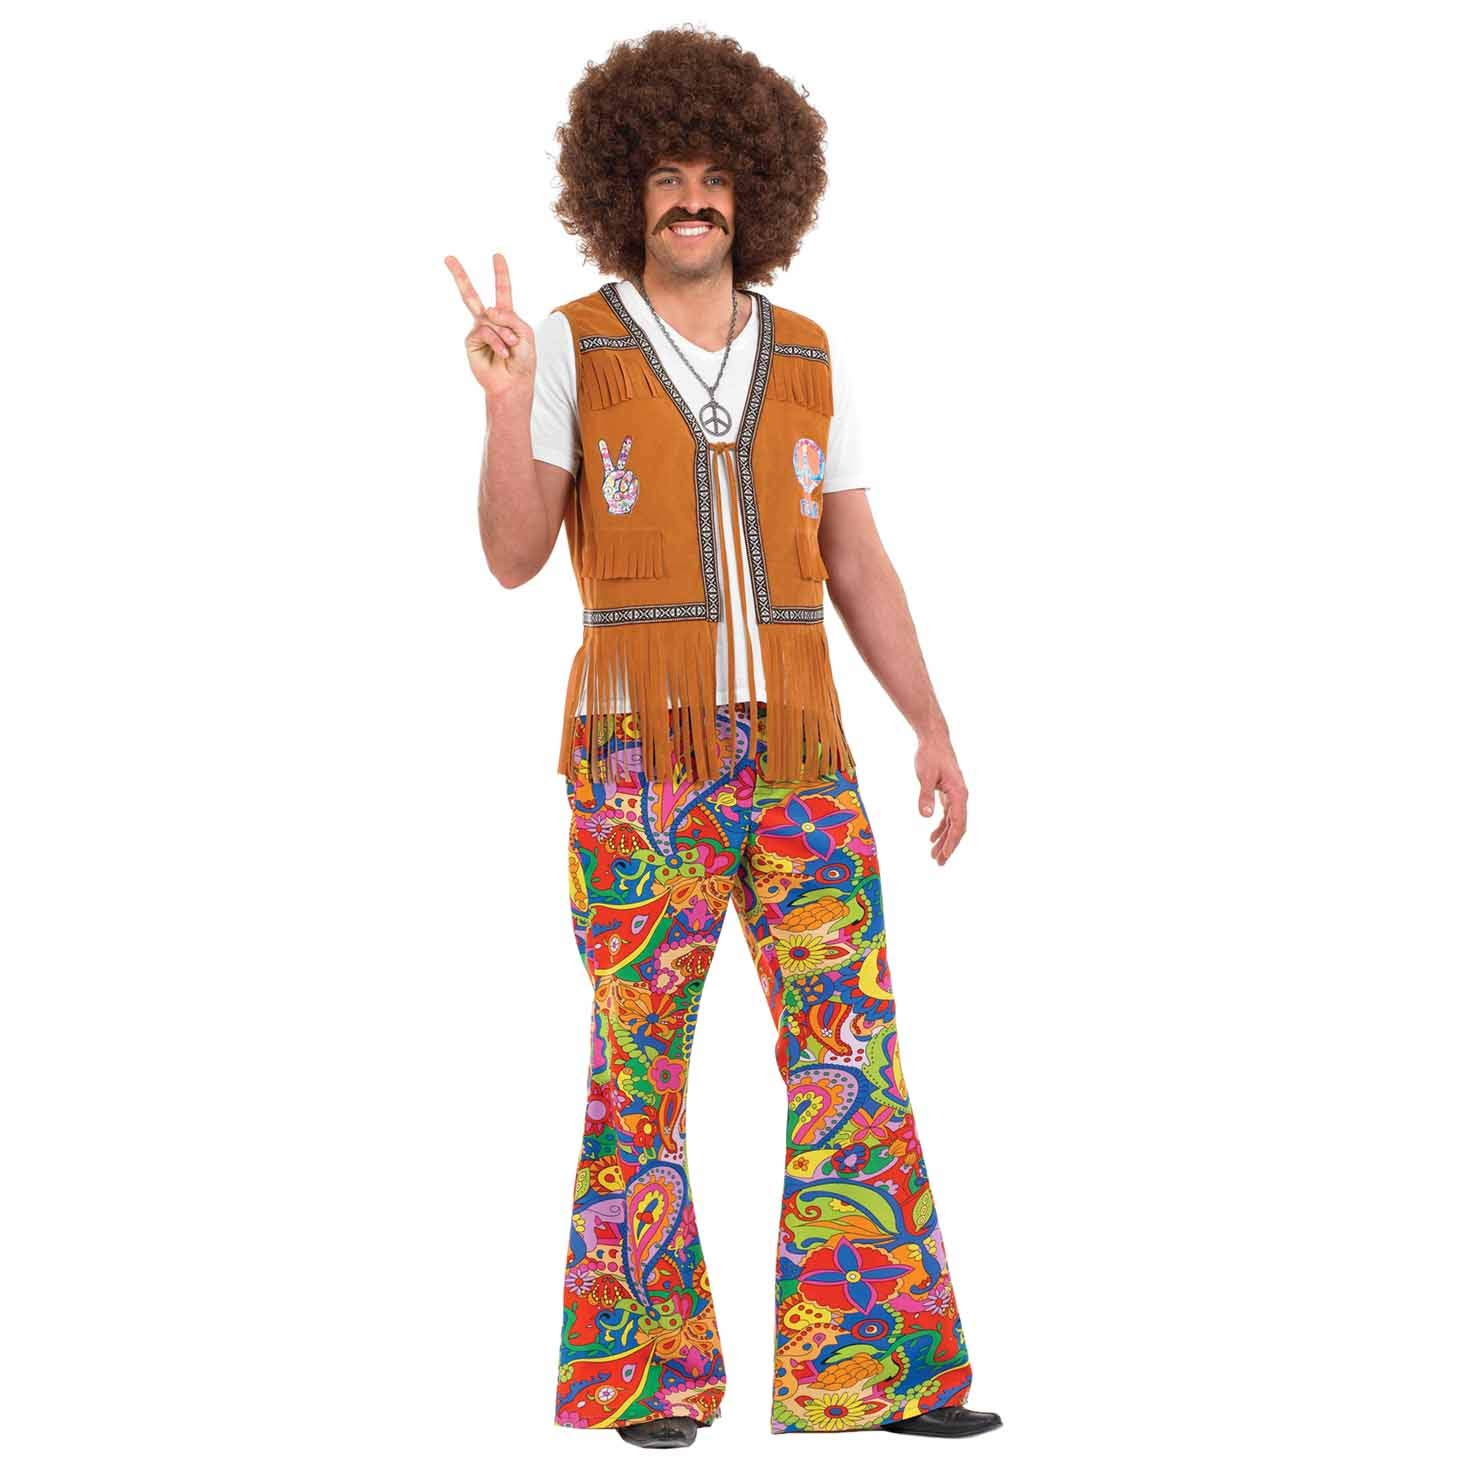 60s , 70s Hippie Clothes for Men fun shack Mens 70s Hippie Costumes Adults 60s Flower Power Hippy Suits - Choice of Styles $49.99 AT vintagedancer.com